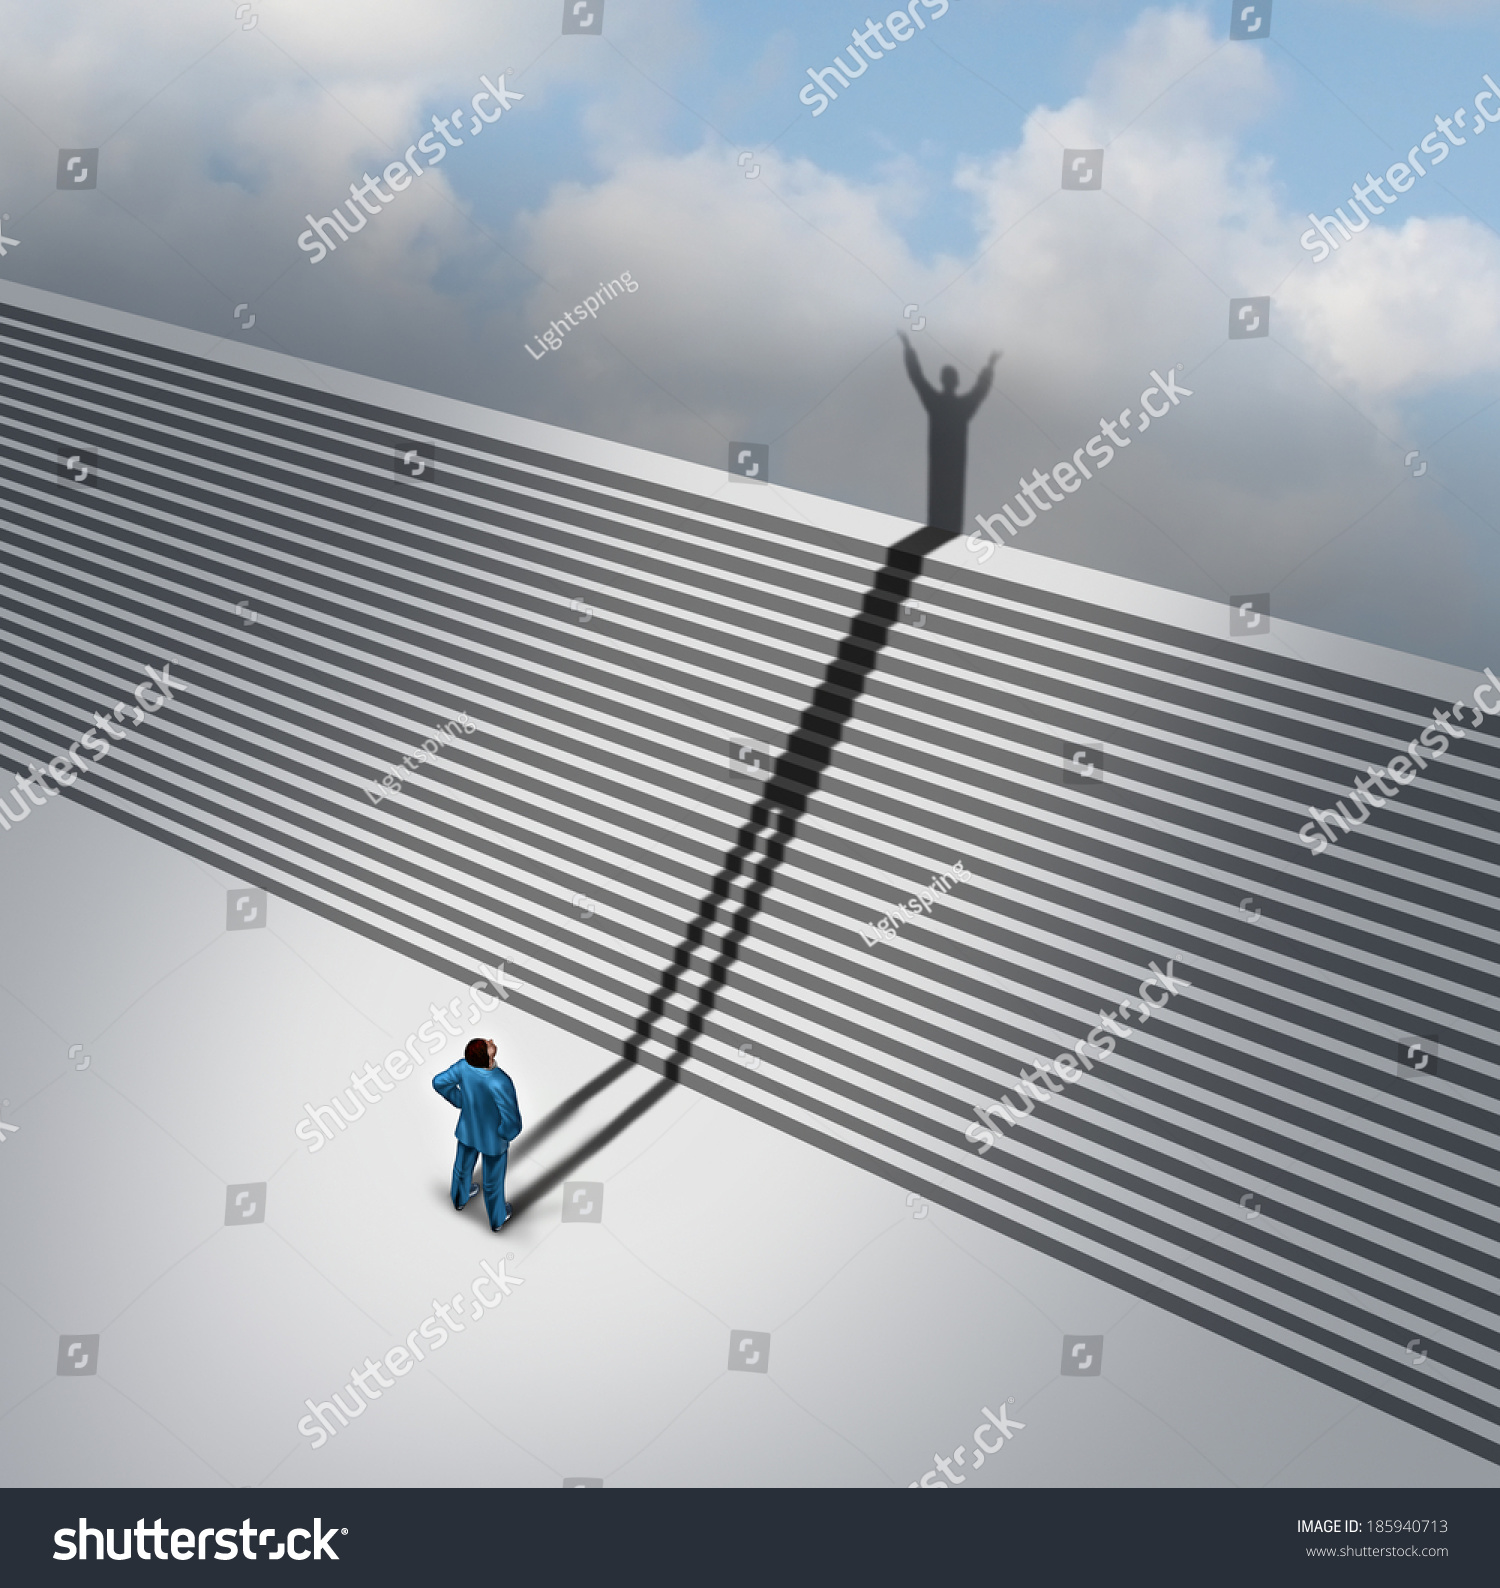 climbing stairs stairway concept cast shadow stock illustration climbing stairs stairway concept as a cast shadow of a businessman climbs the ladder of success